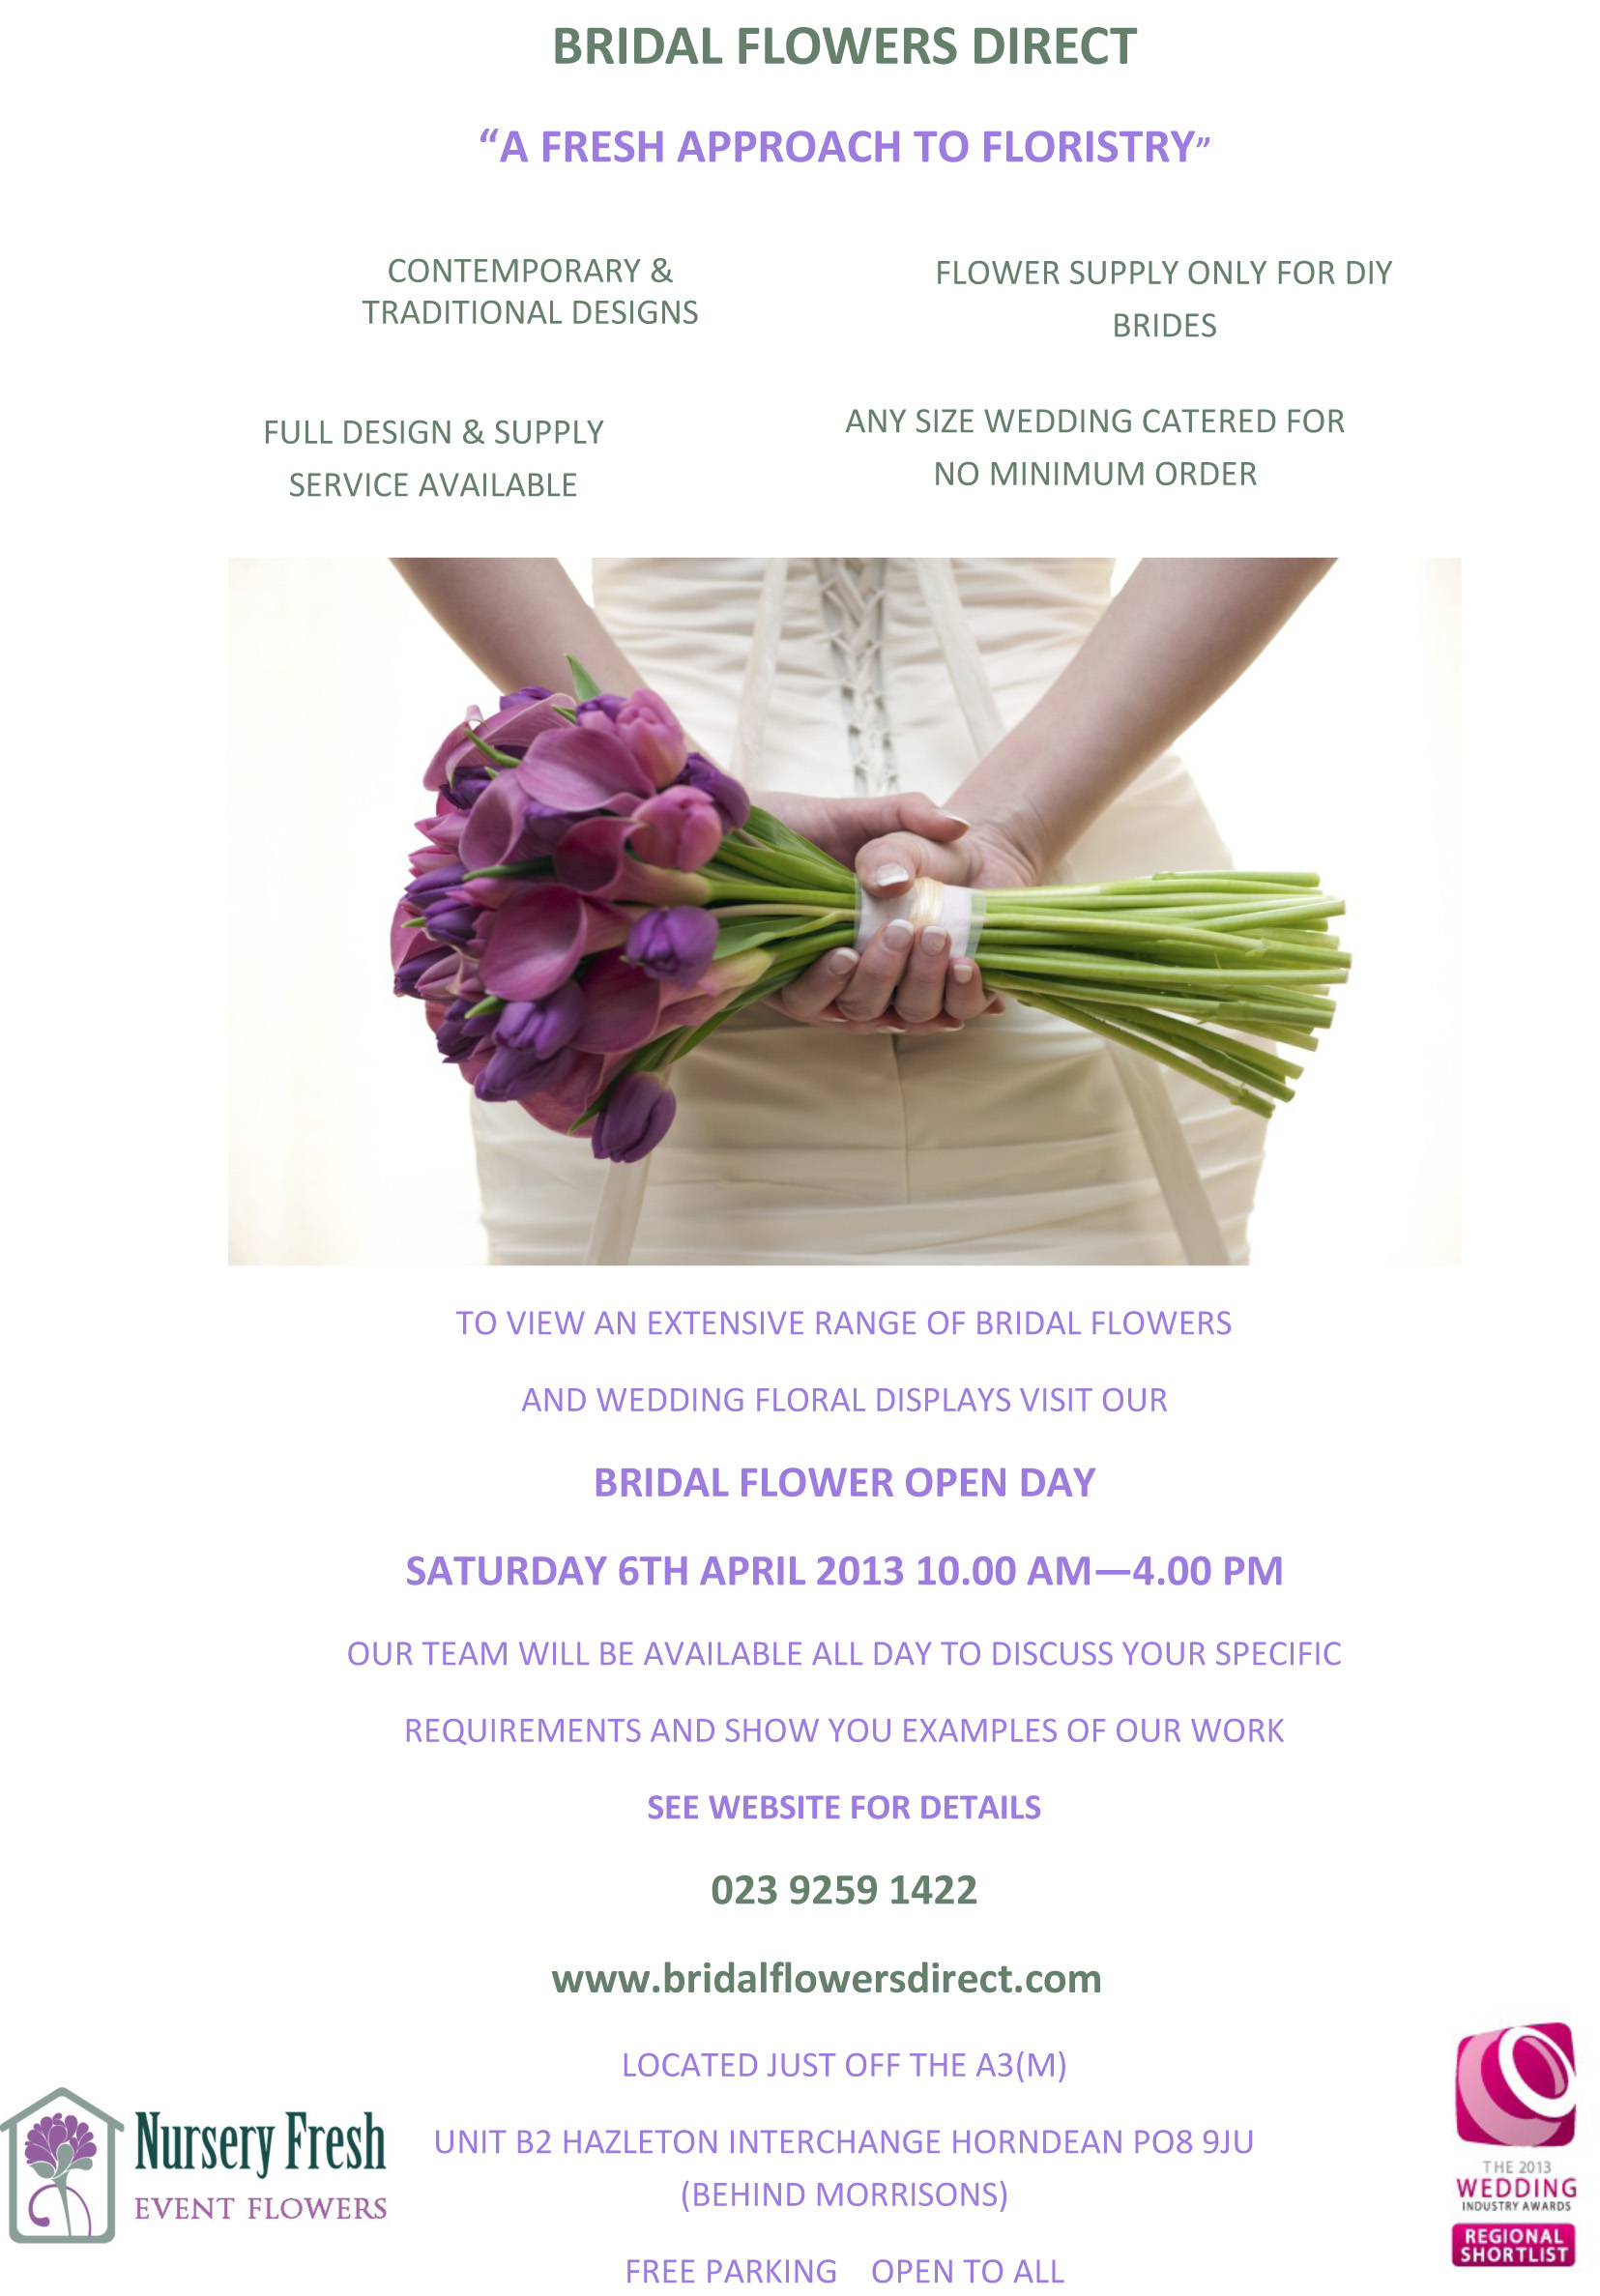 Bridal Flower Open Day Saturday 6th April 2013 Bridal Flowers Direct